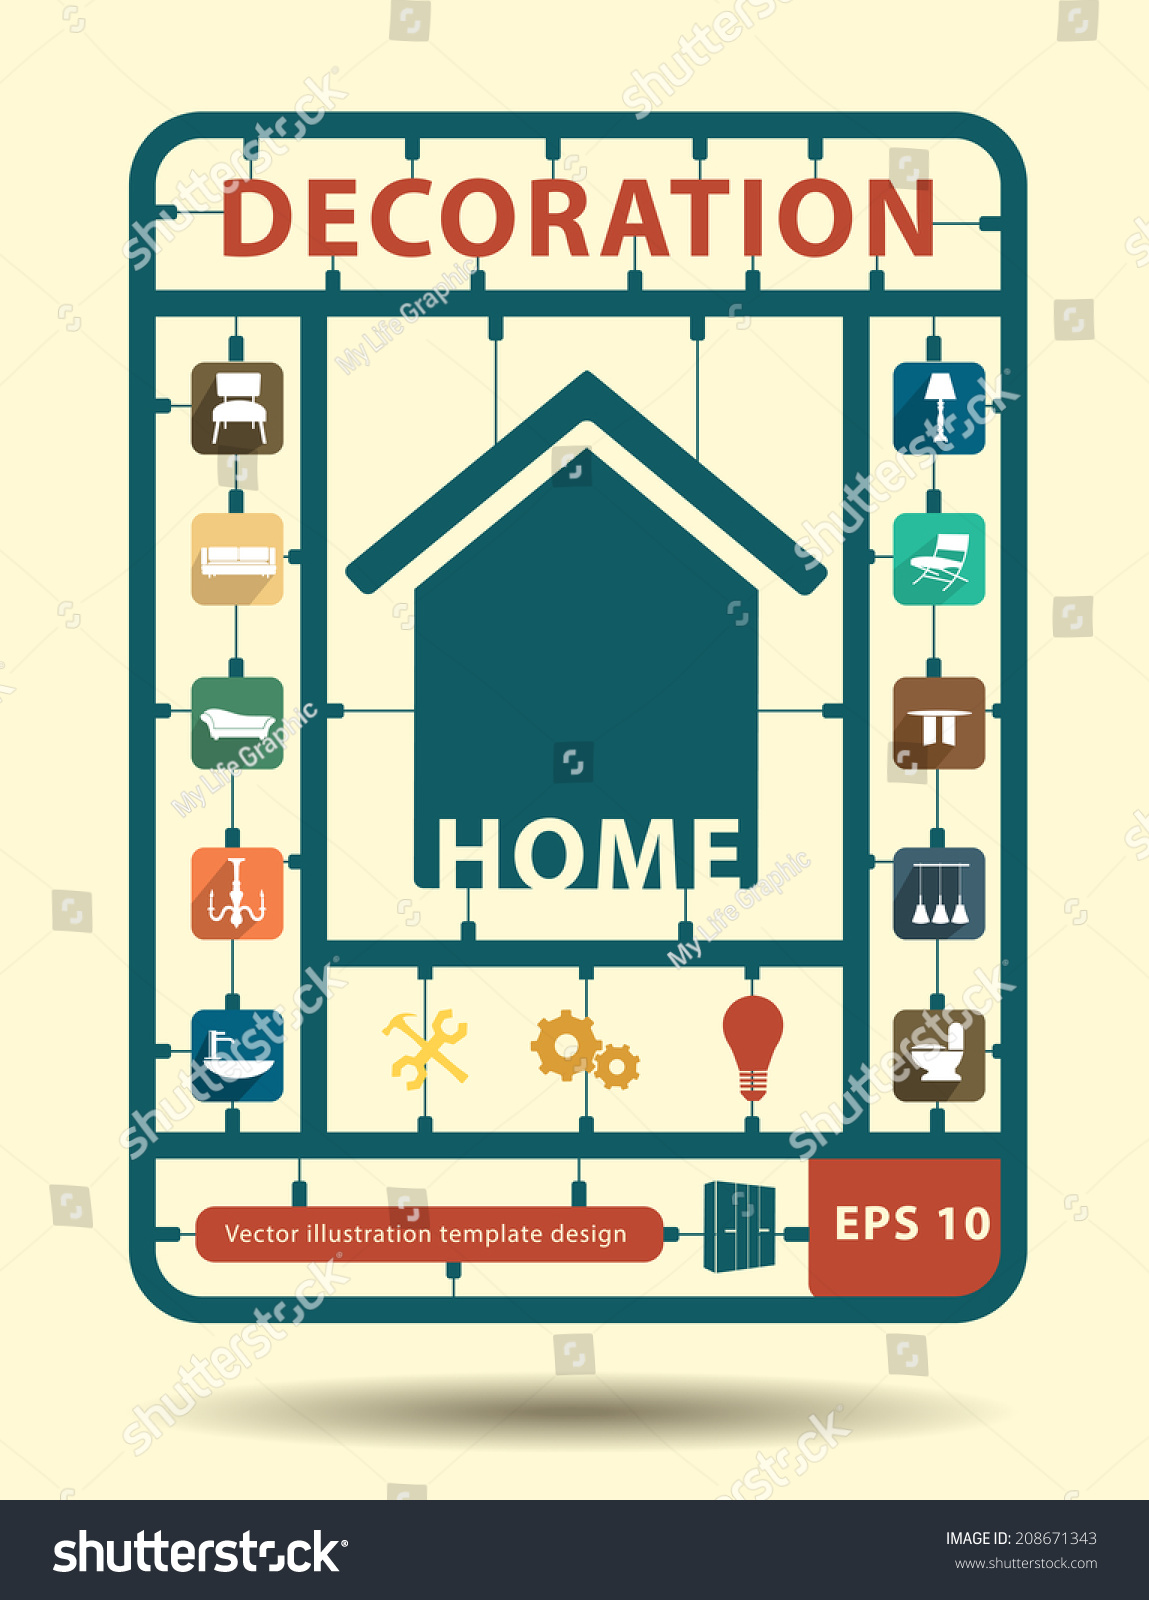 Furniture Flat Icons Home Decoration Idea Concept, With Creative Plastic  Model Kits, Info Graphic